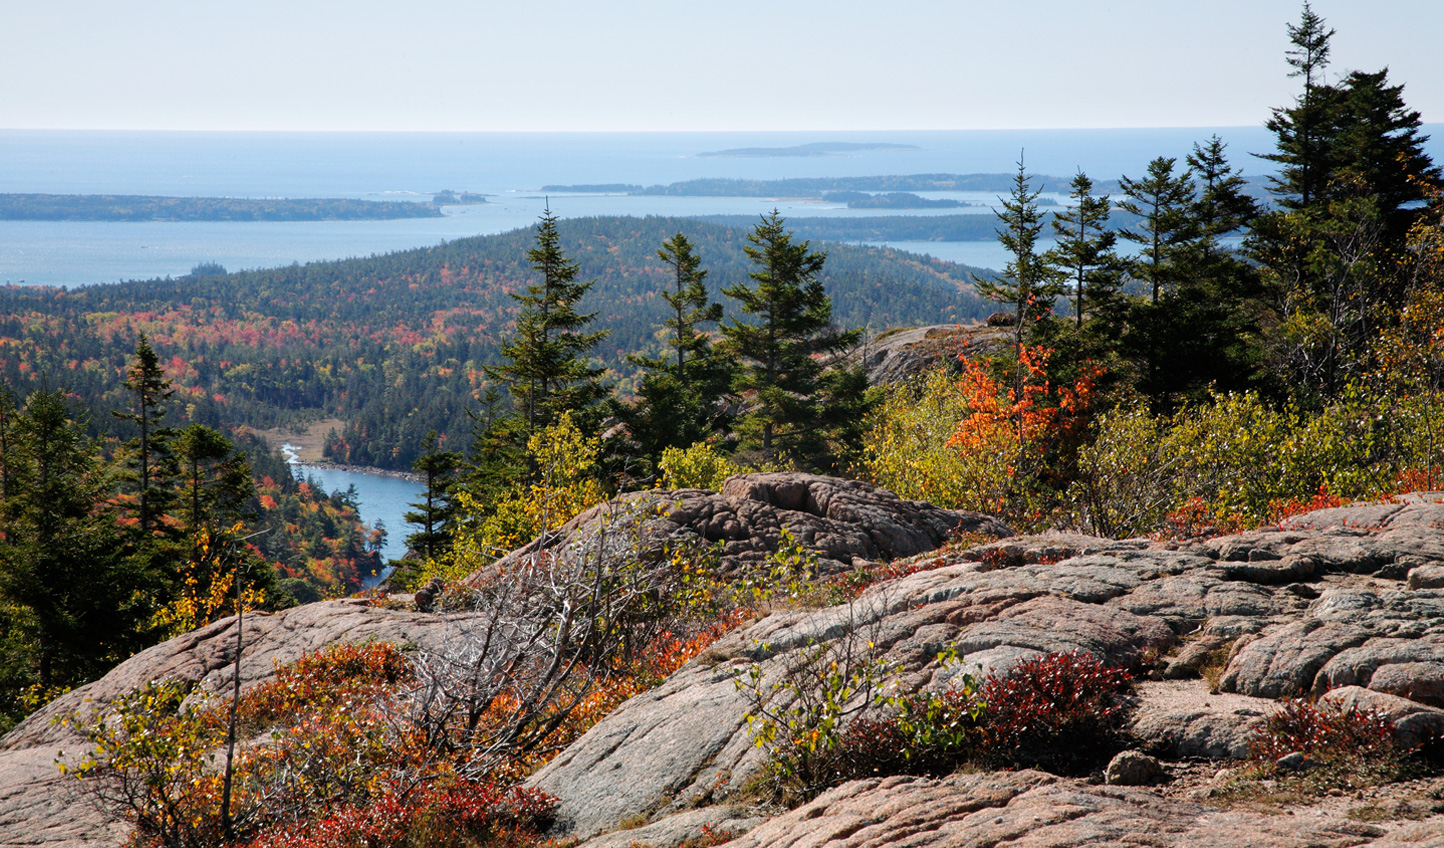 Acadia National Park is home to the highest rocky headlands along the Atlantic coastline of the United States